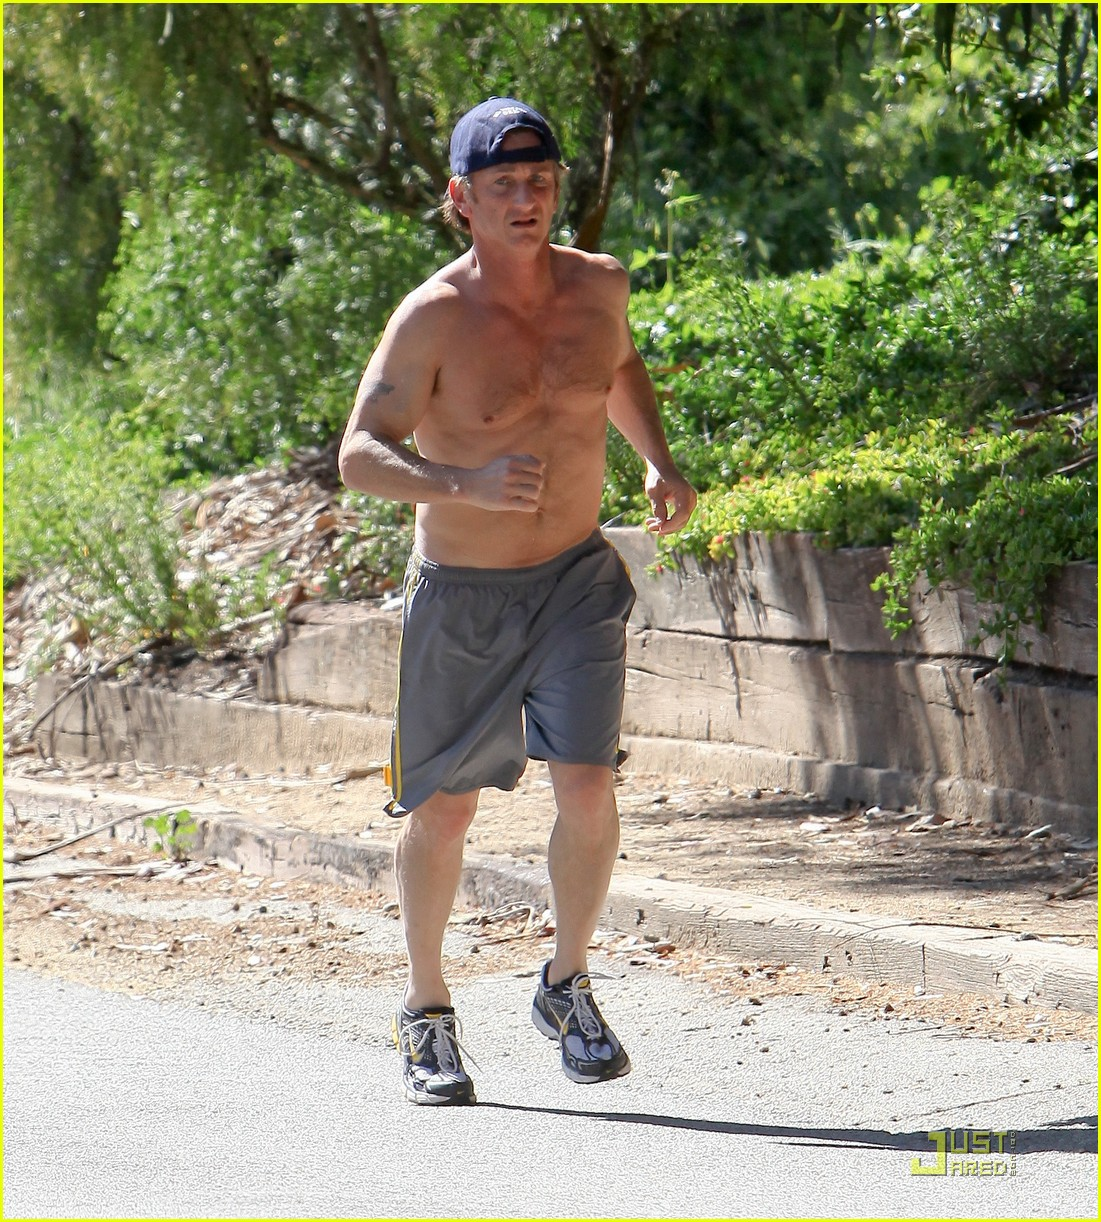 sean penn shirtless jogging 16